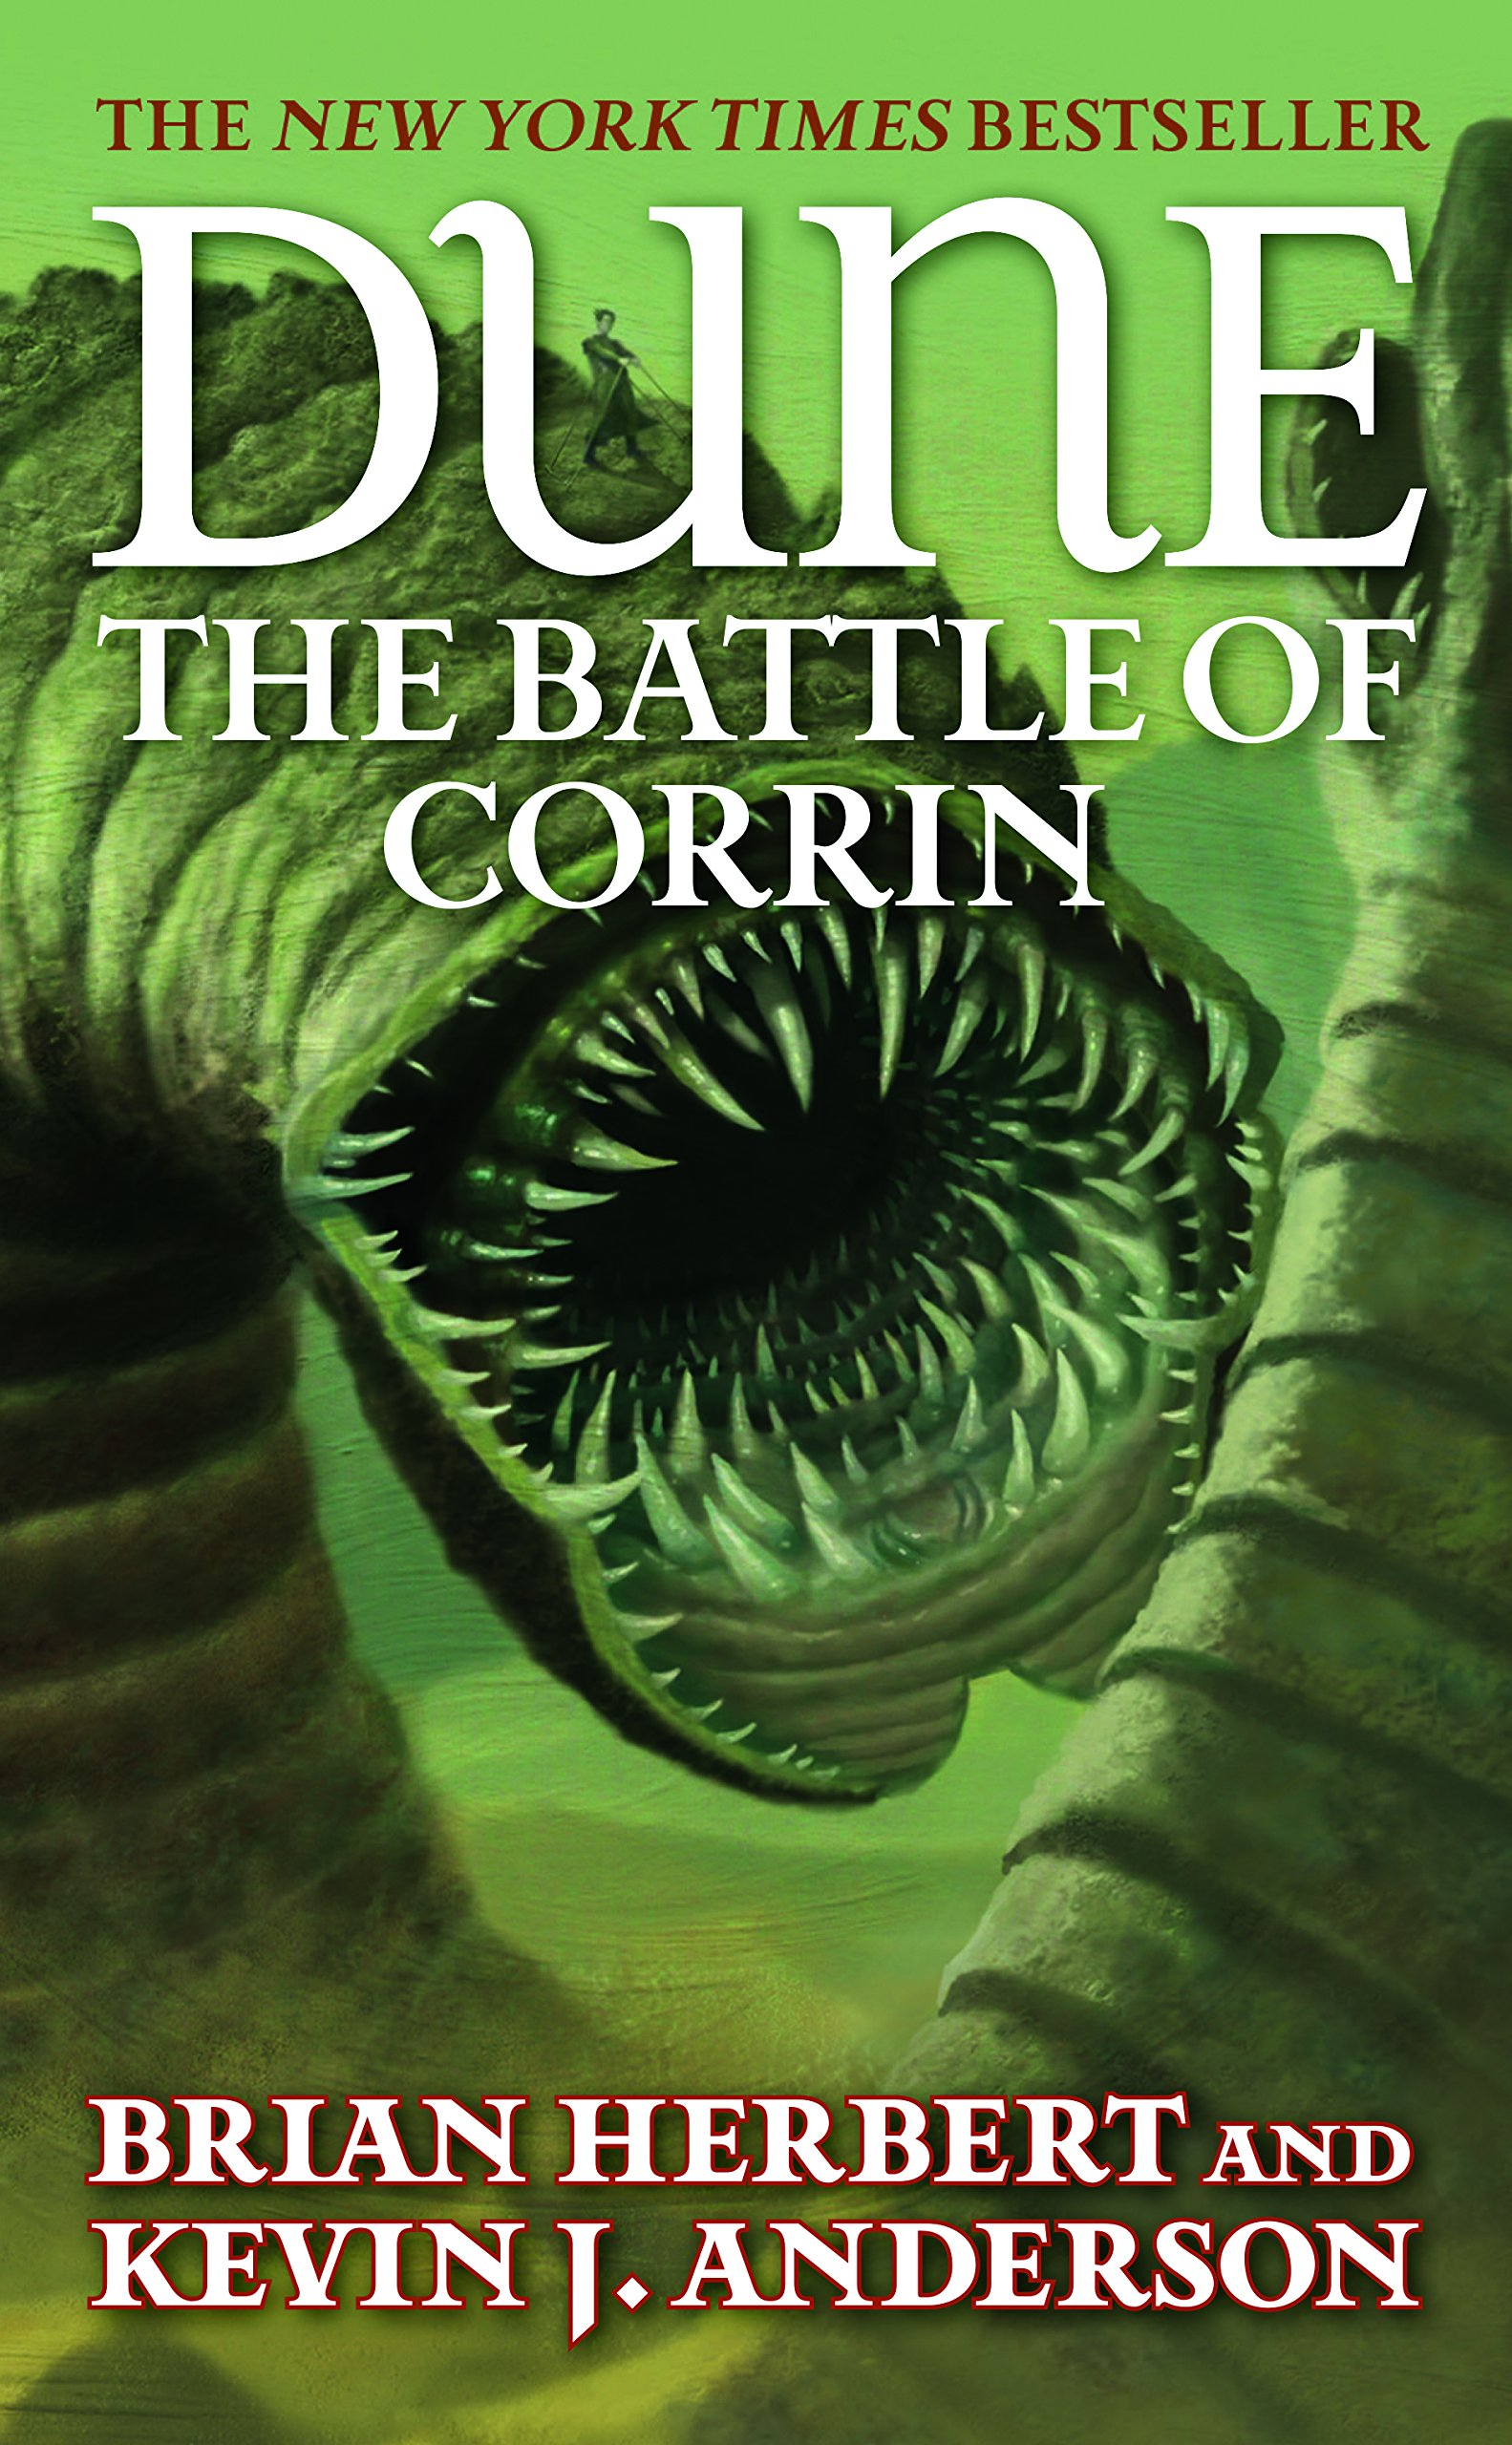 Dune-The-Battle-of-Corrin-cover-Brian-Herbert-and-Kevin-J.-Anderson